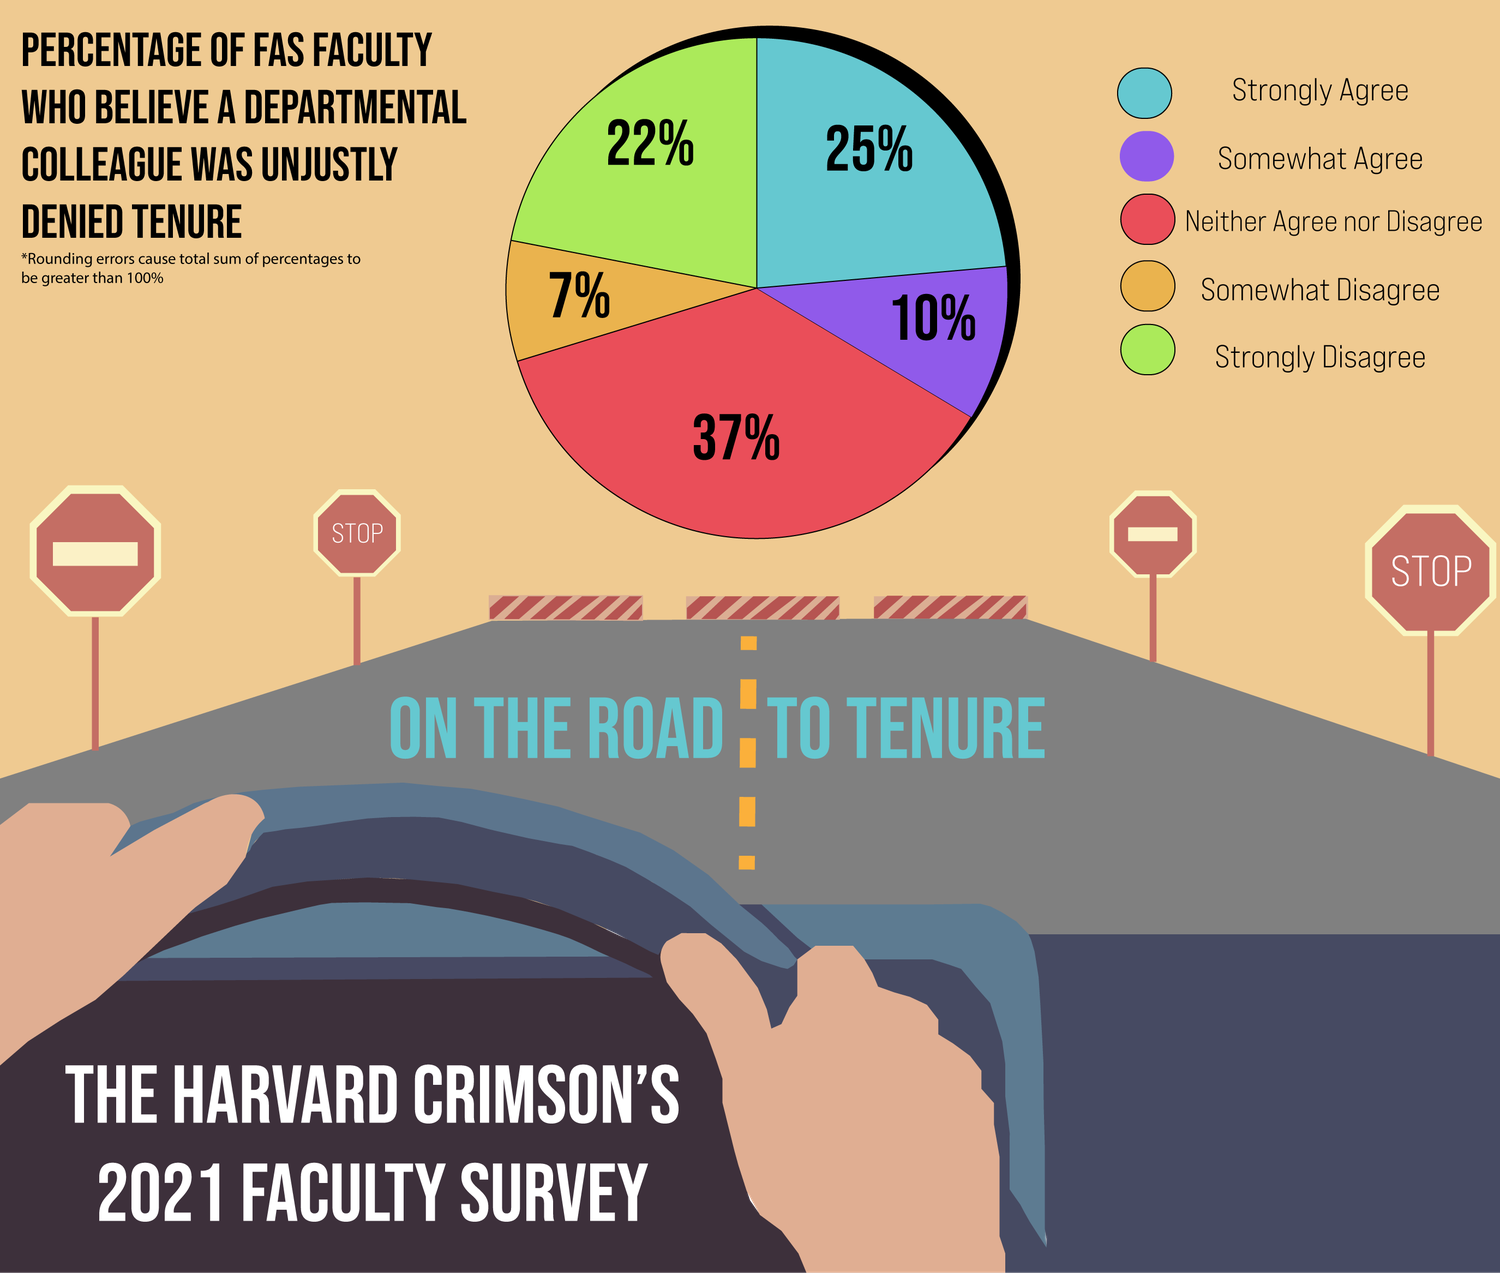 Thirty-five percent of respondents to The Crimson's annual survey said they believe at least one colleague in their department was unjustly denied tenure, with a quarter indicating they strongly